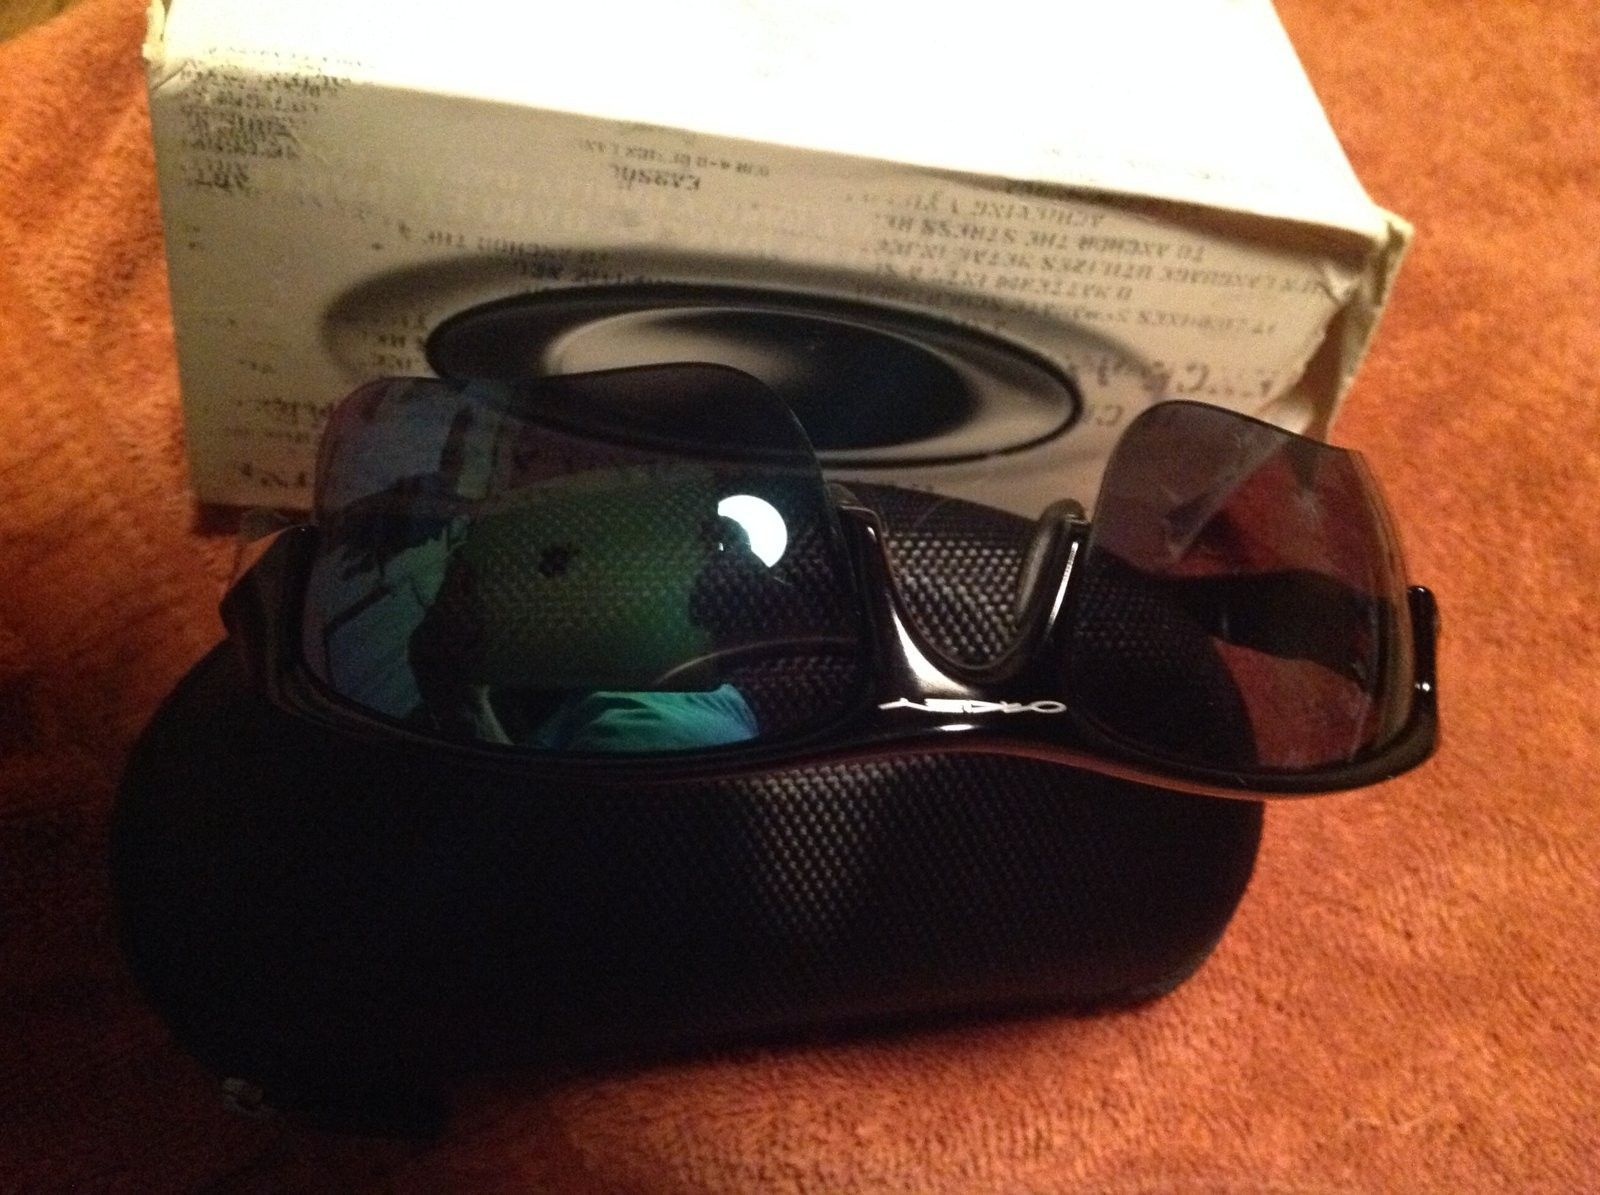 Purchased Today. My First PURCHASED New Oakleys in 20 Years! - image.jpeg